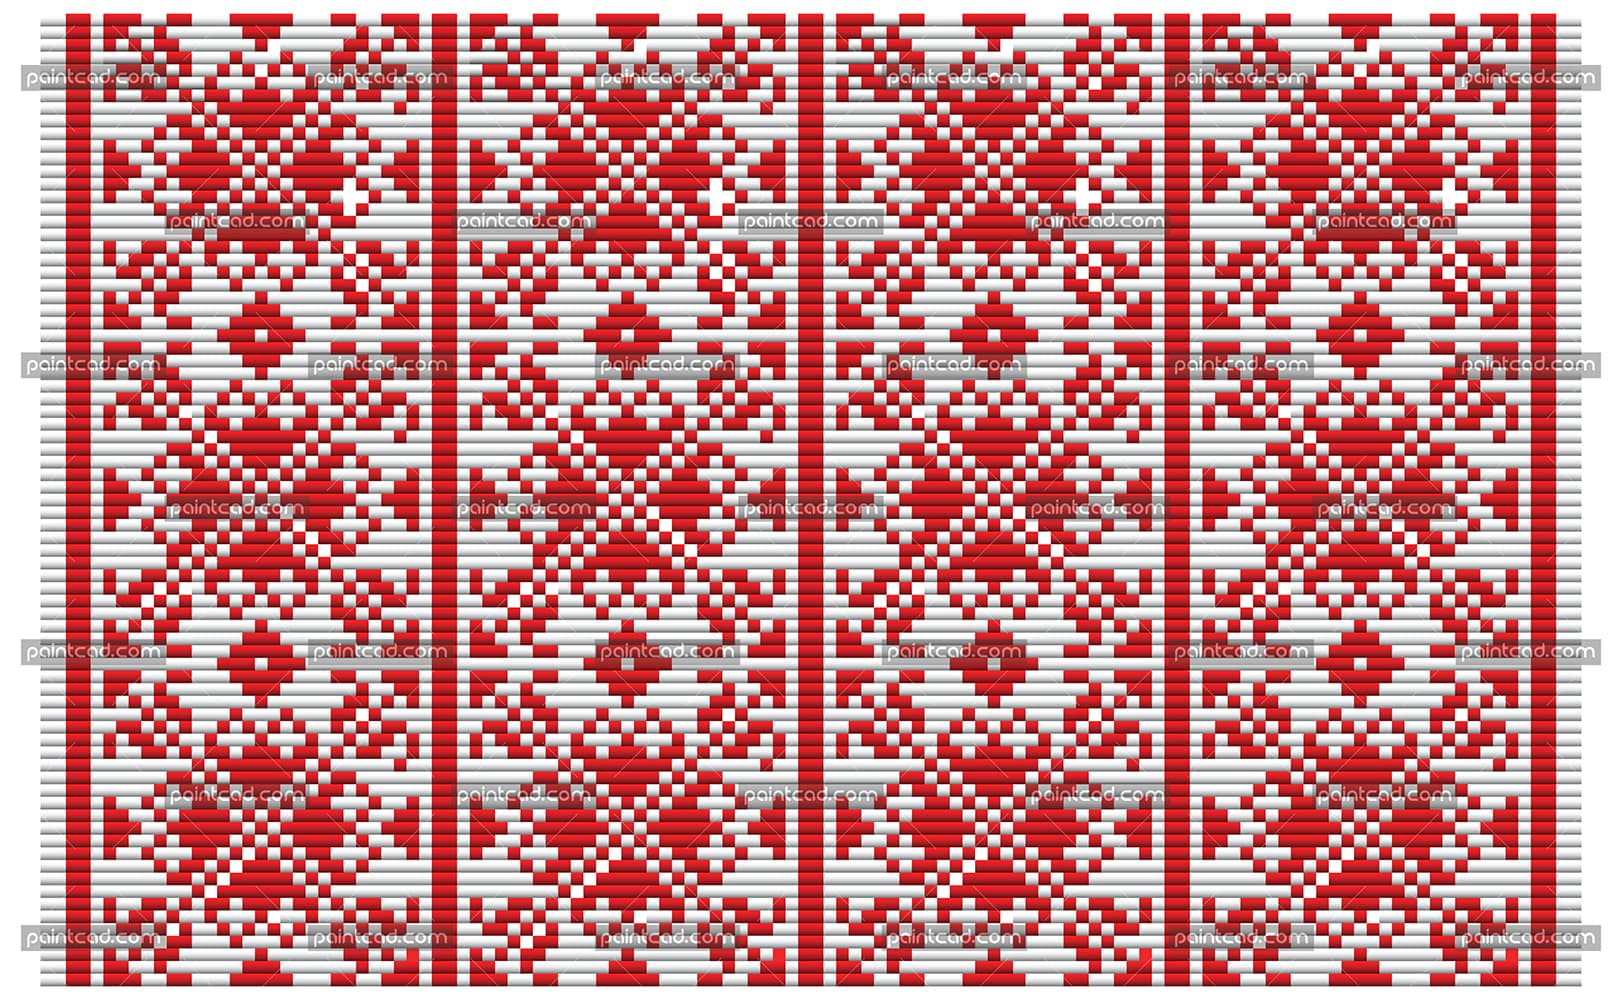 Bulgarian ethnic geometric mosaic pattern in red and white - vector illustration